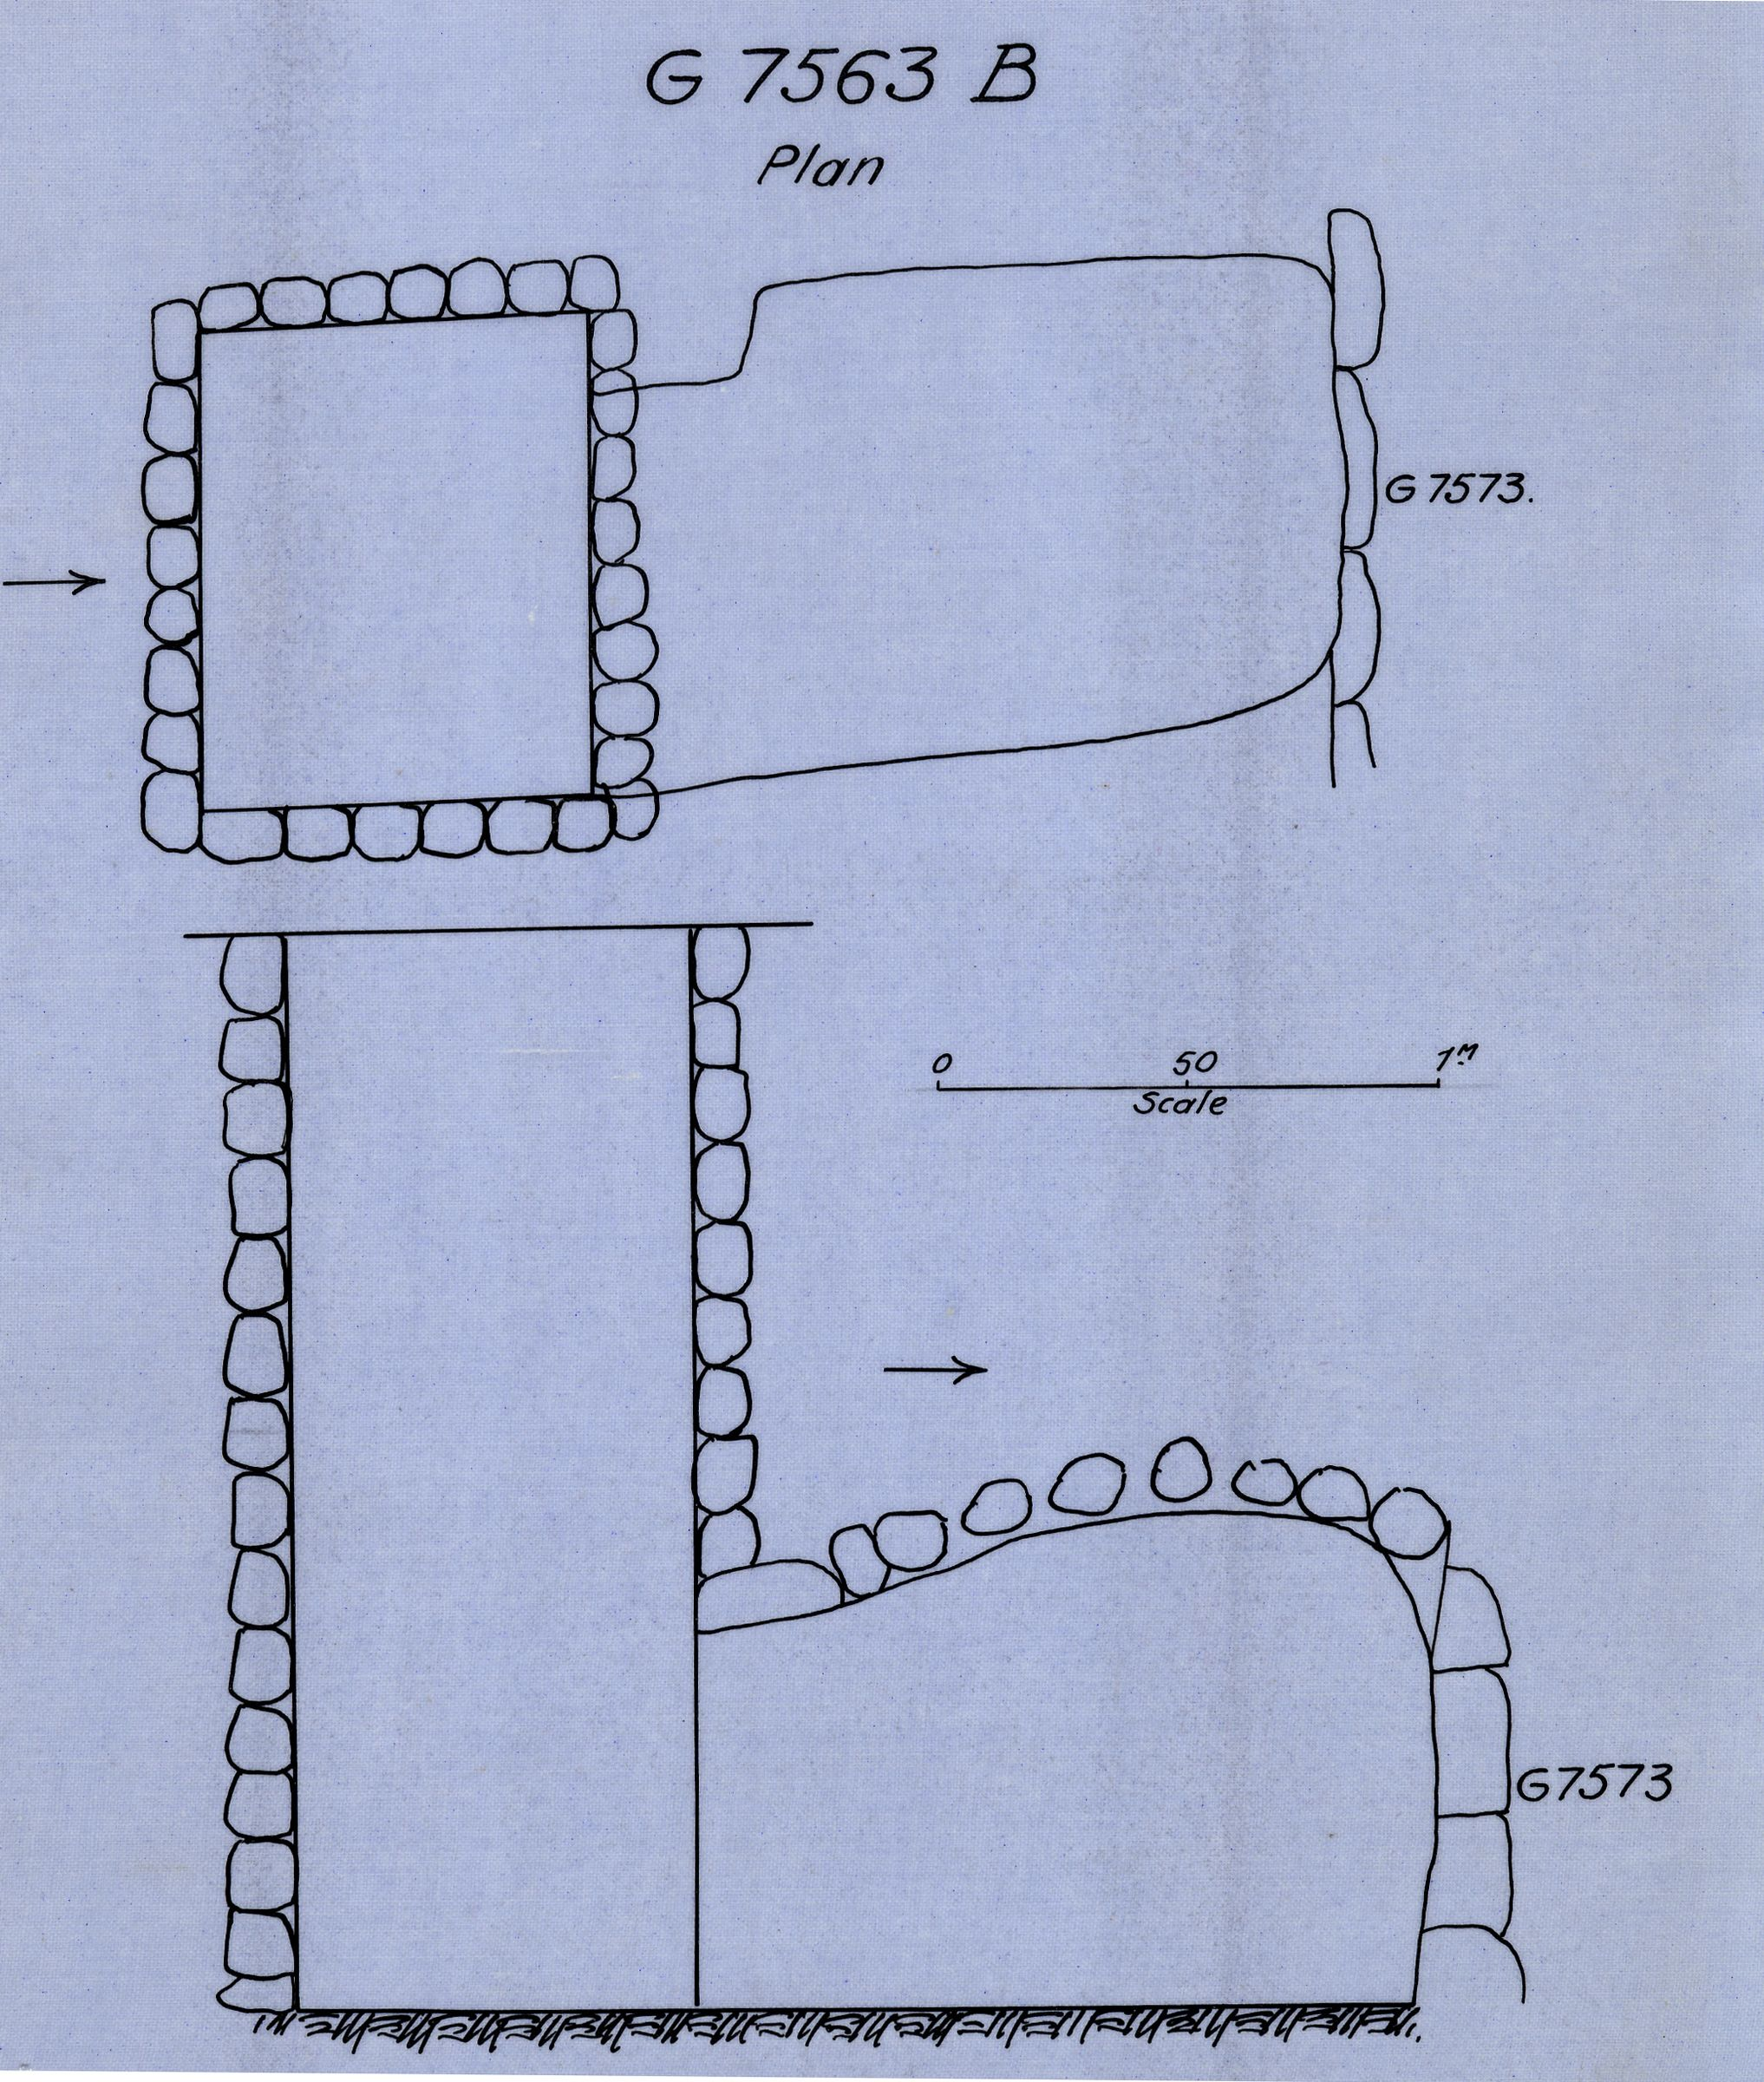 Maps and plans: G 7563, Shaft B